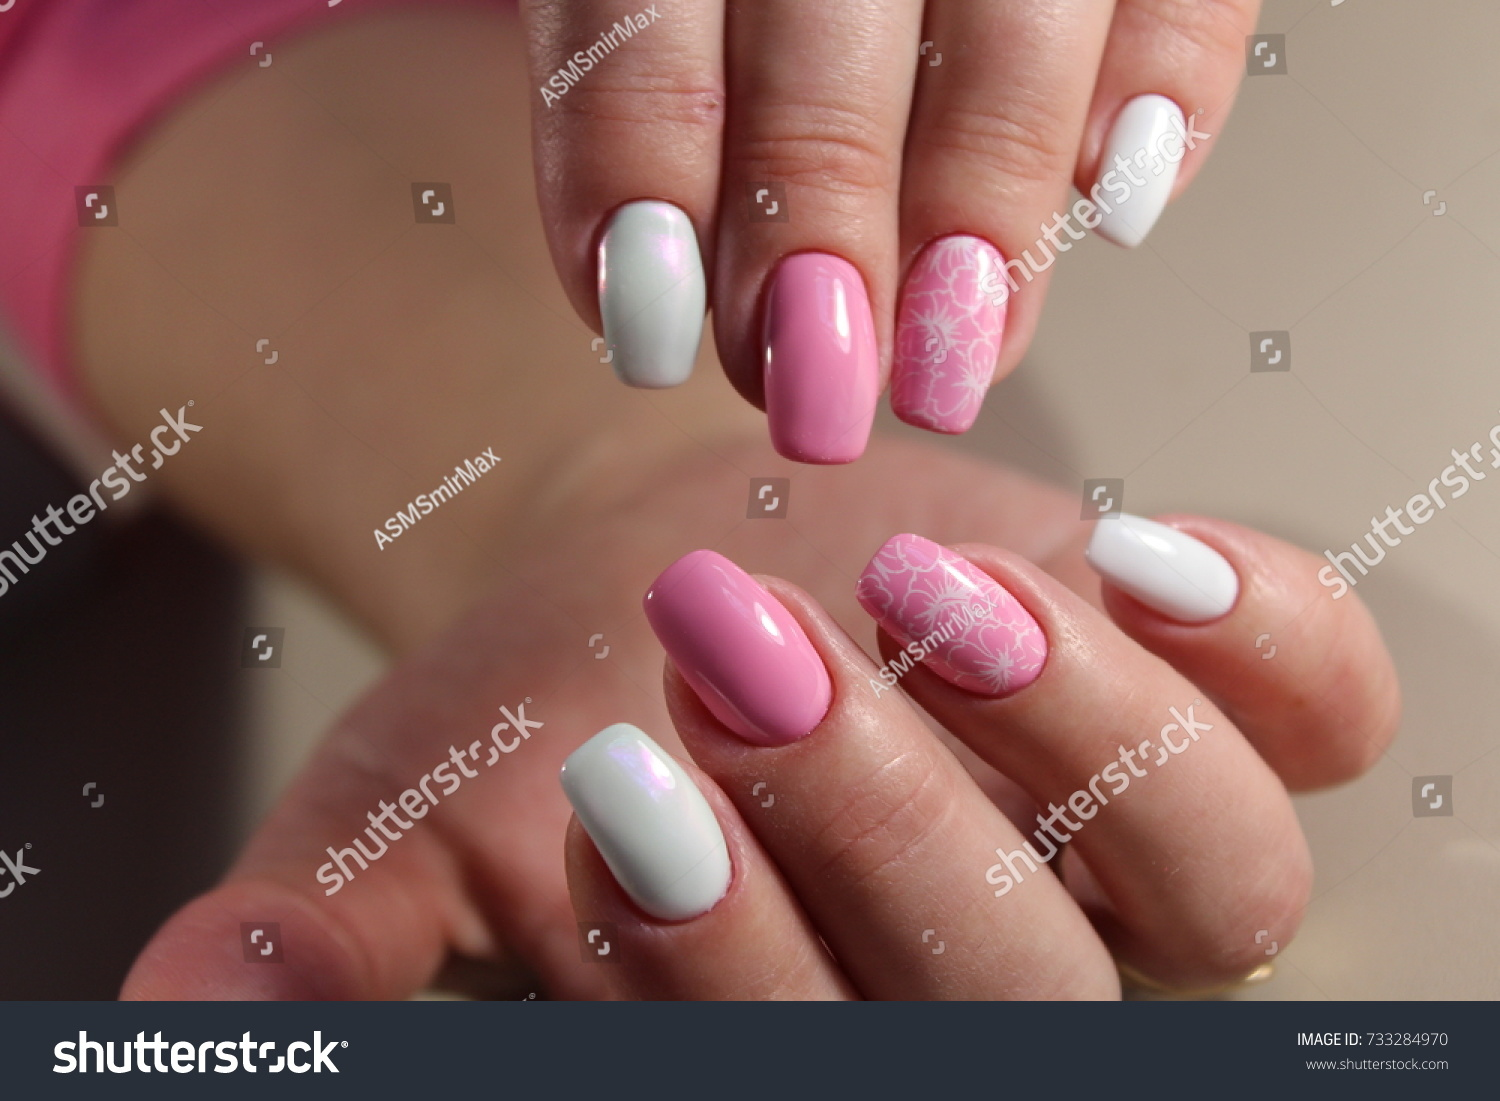 Cute Design Manicure Pink White Color Stock Photo (Royalty Free ...